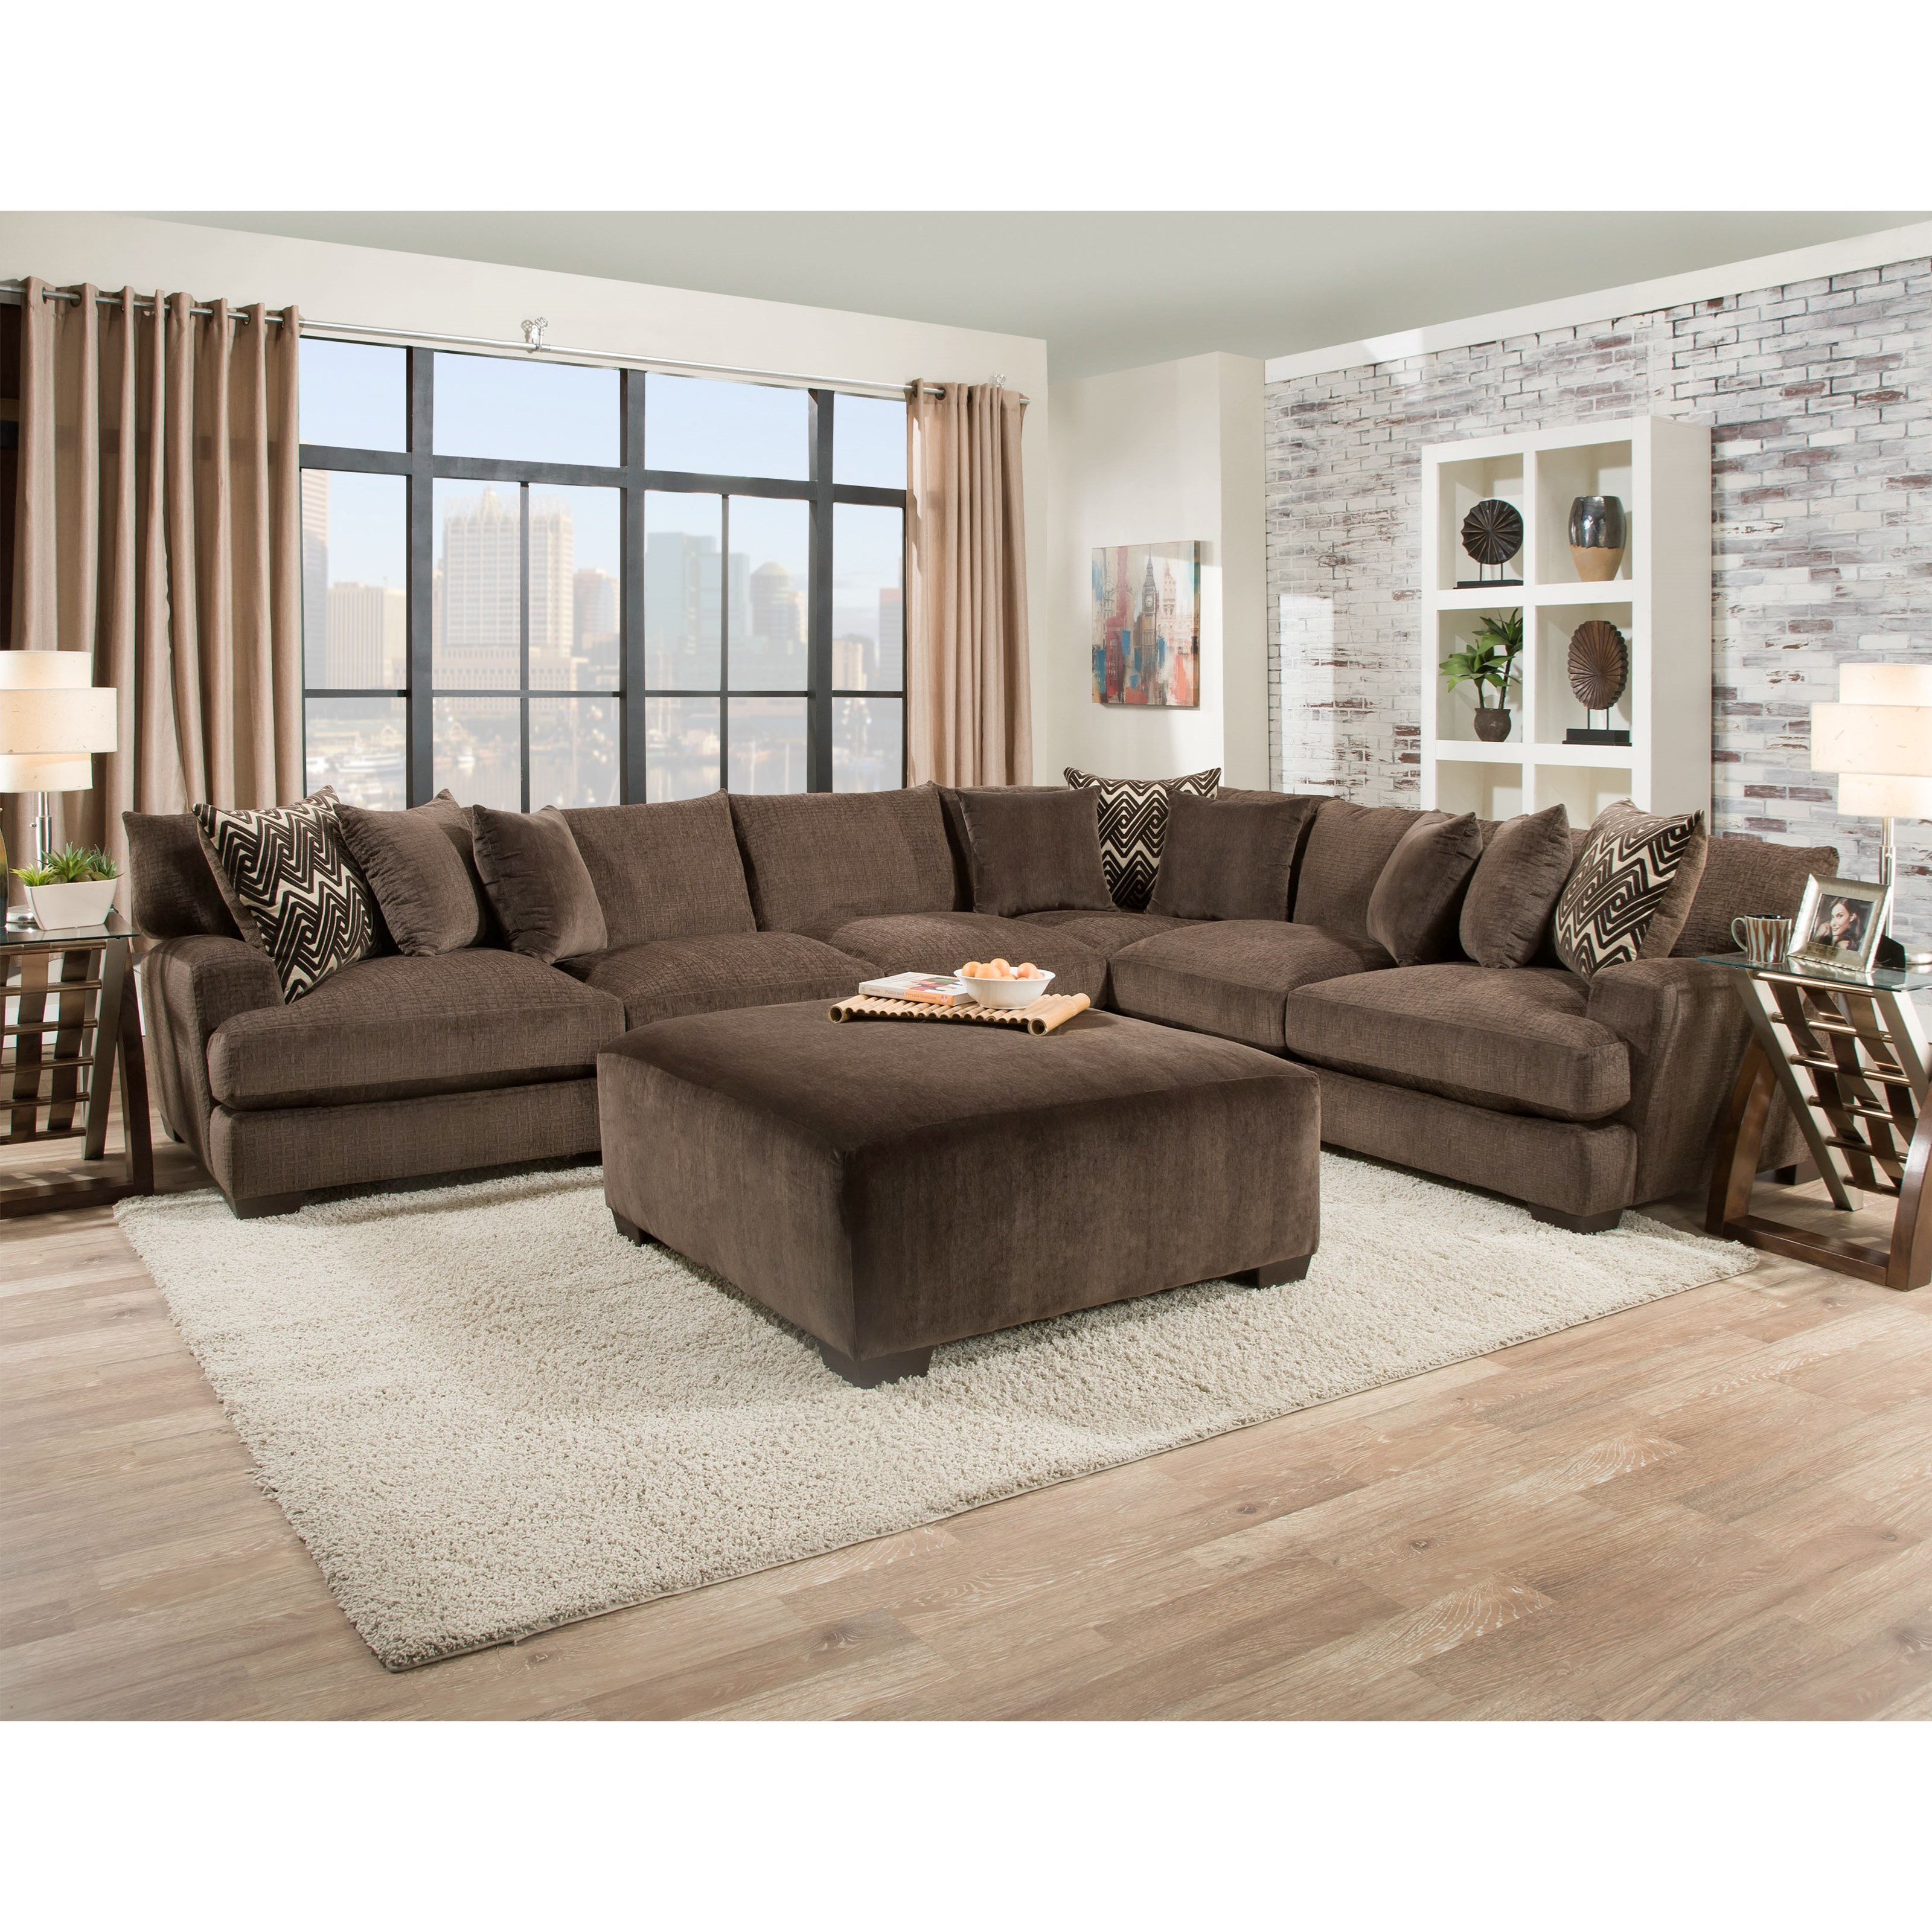 American Furniture 1600 Living Room Group - Item Number: 1600 Living Room Group 2-Chocolate